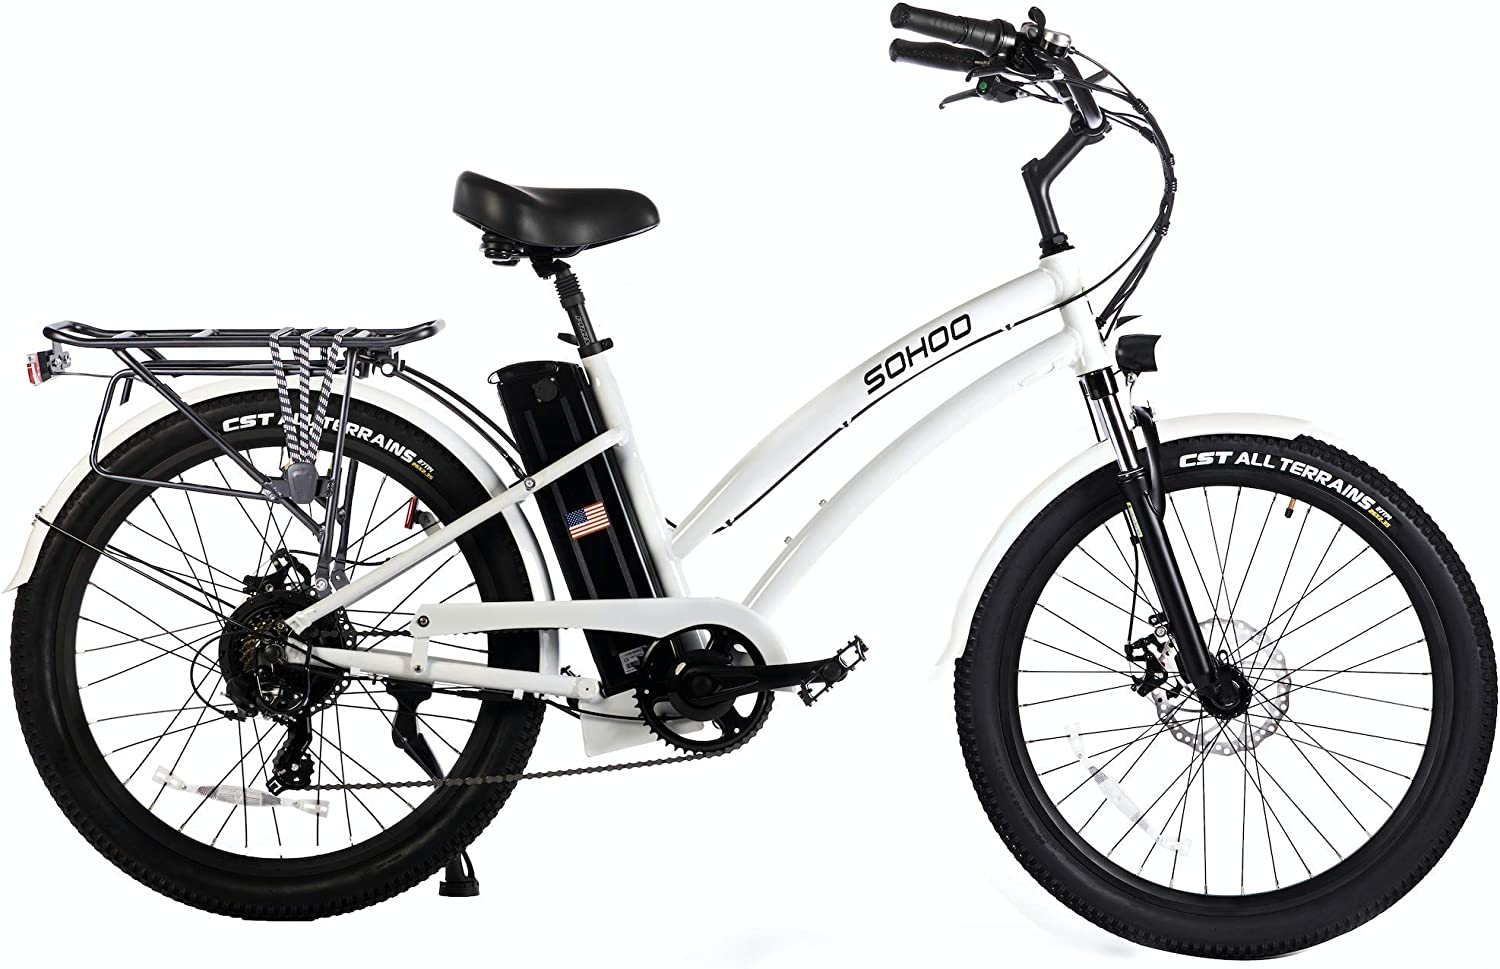 Sohoo electric bike